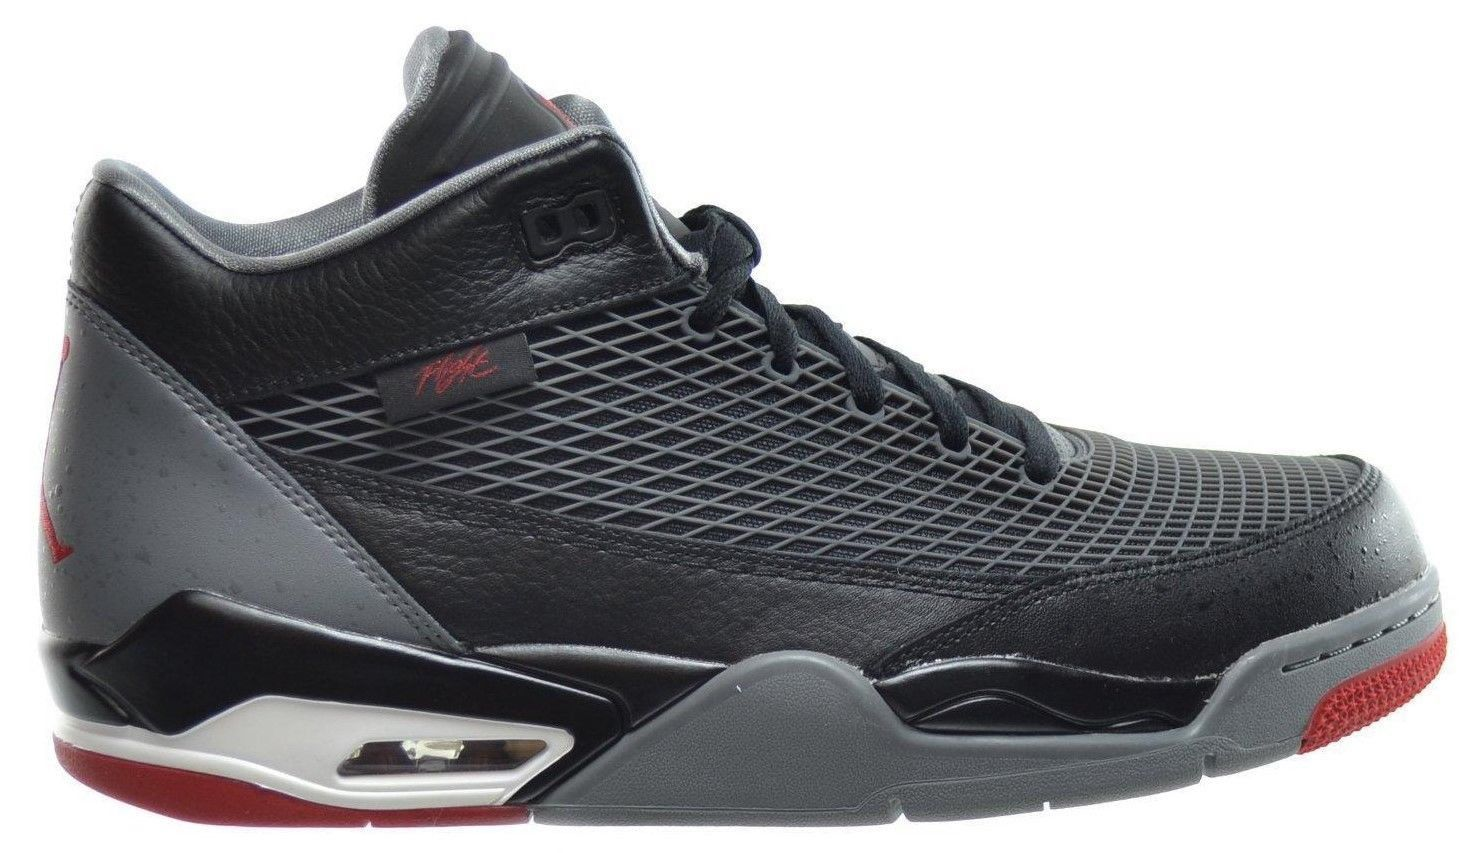 new products 3ef76 805bb Air Jordan Flight Club 80 s Black Red Grey White Mens Basketball Sneakers  Nike Size 9